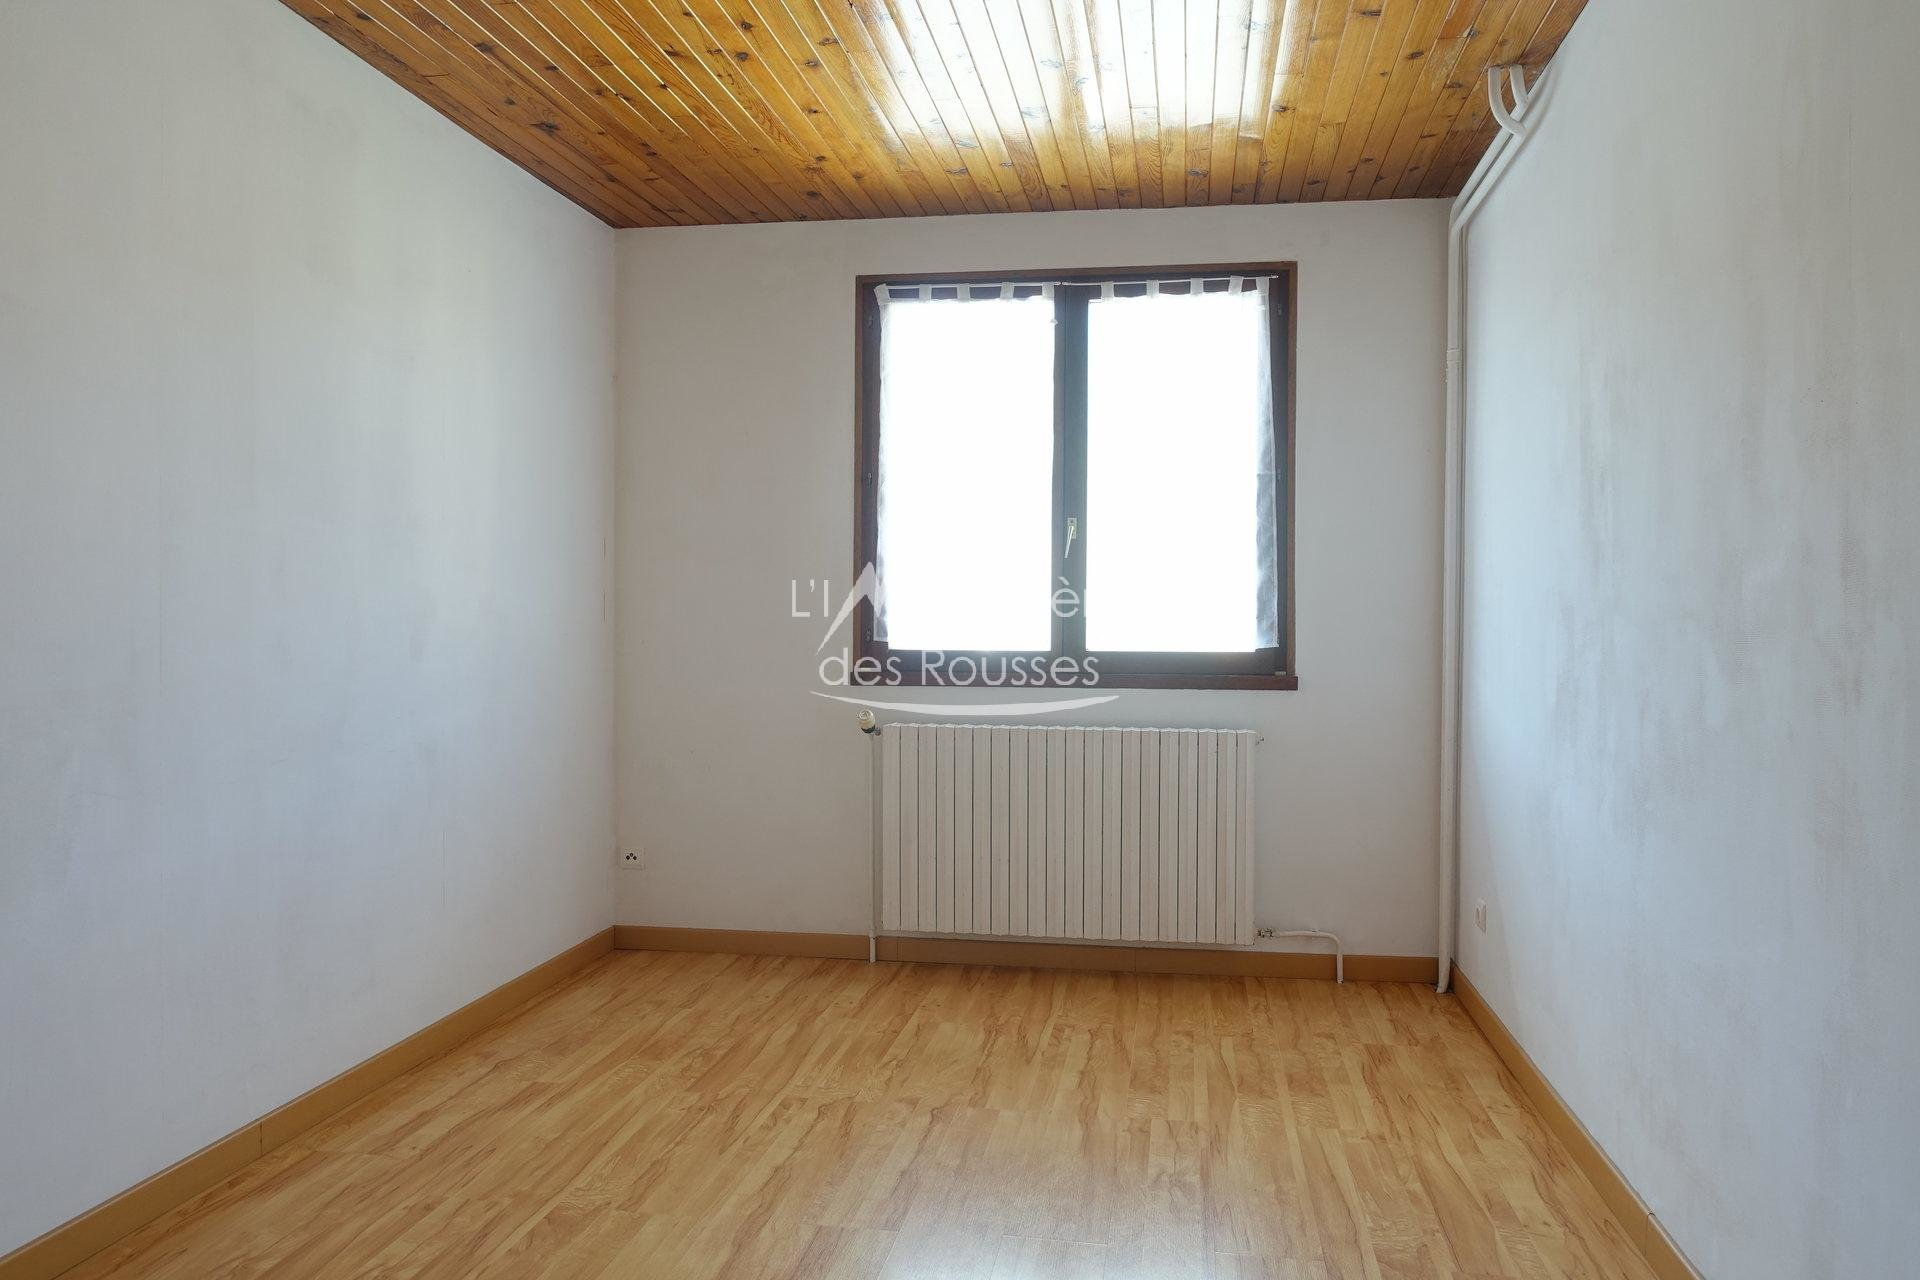 Rental Apartment - Les Rousses